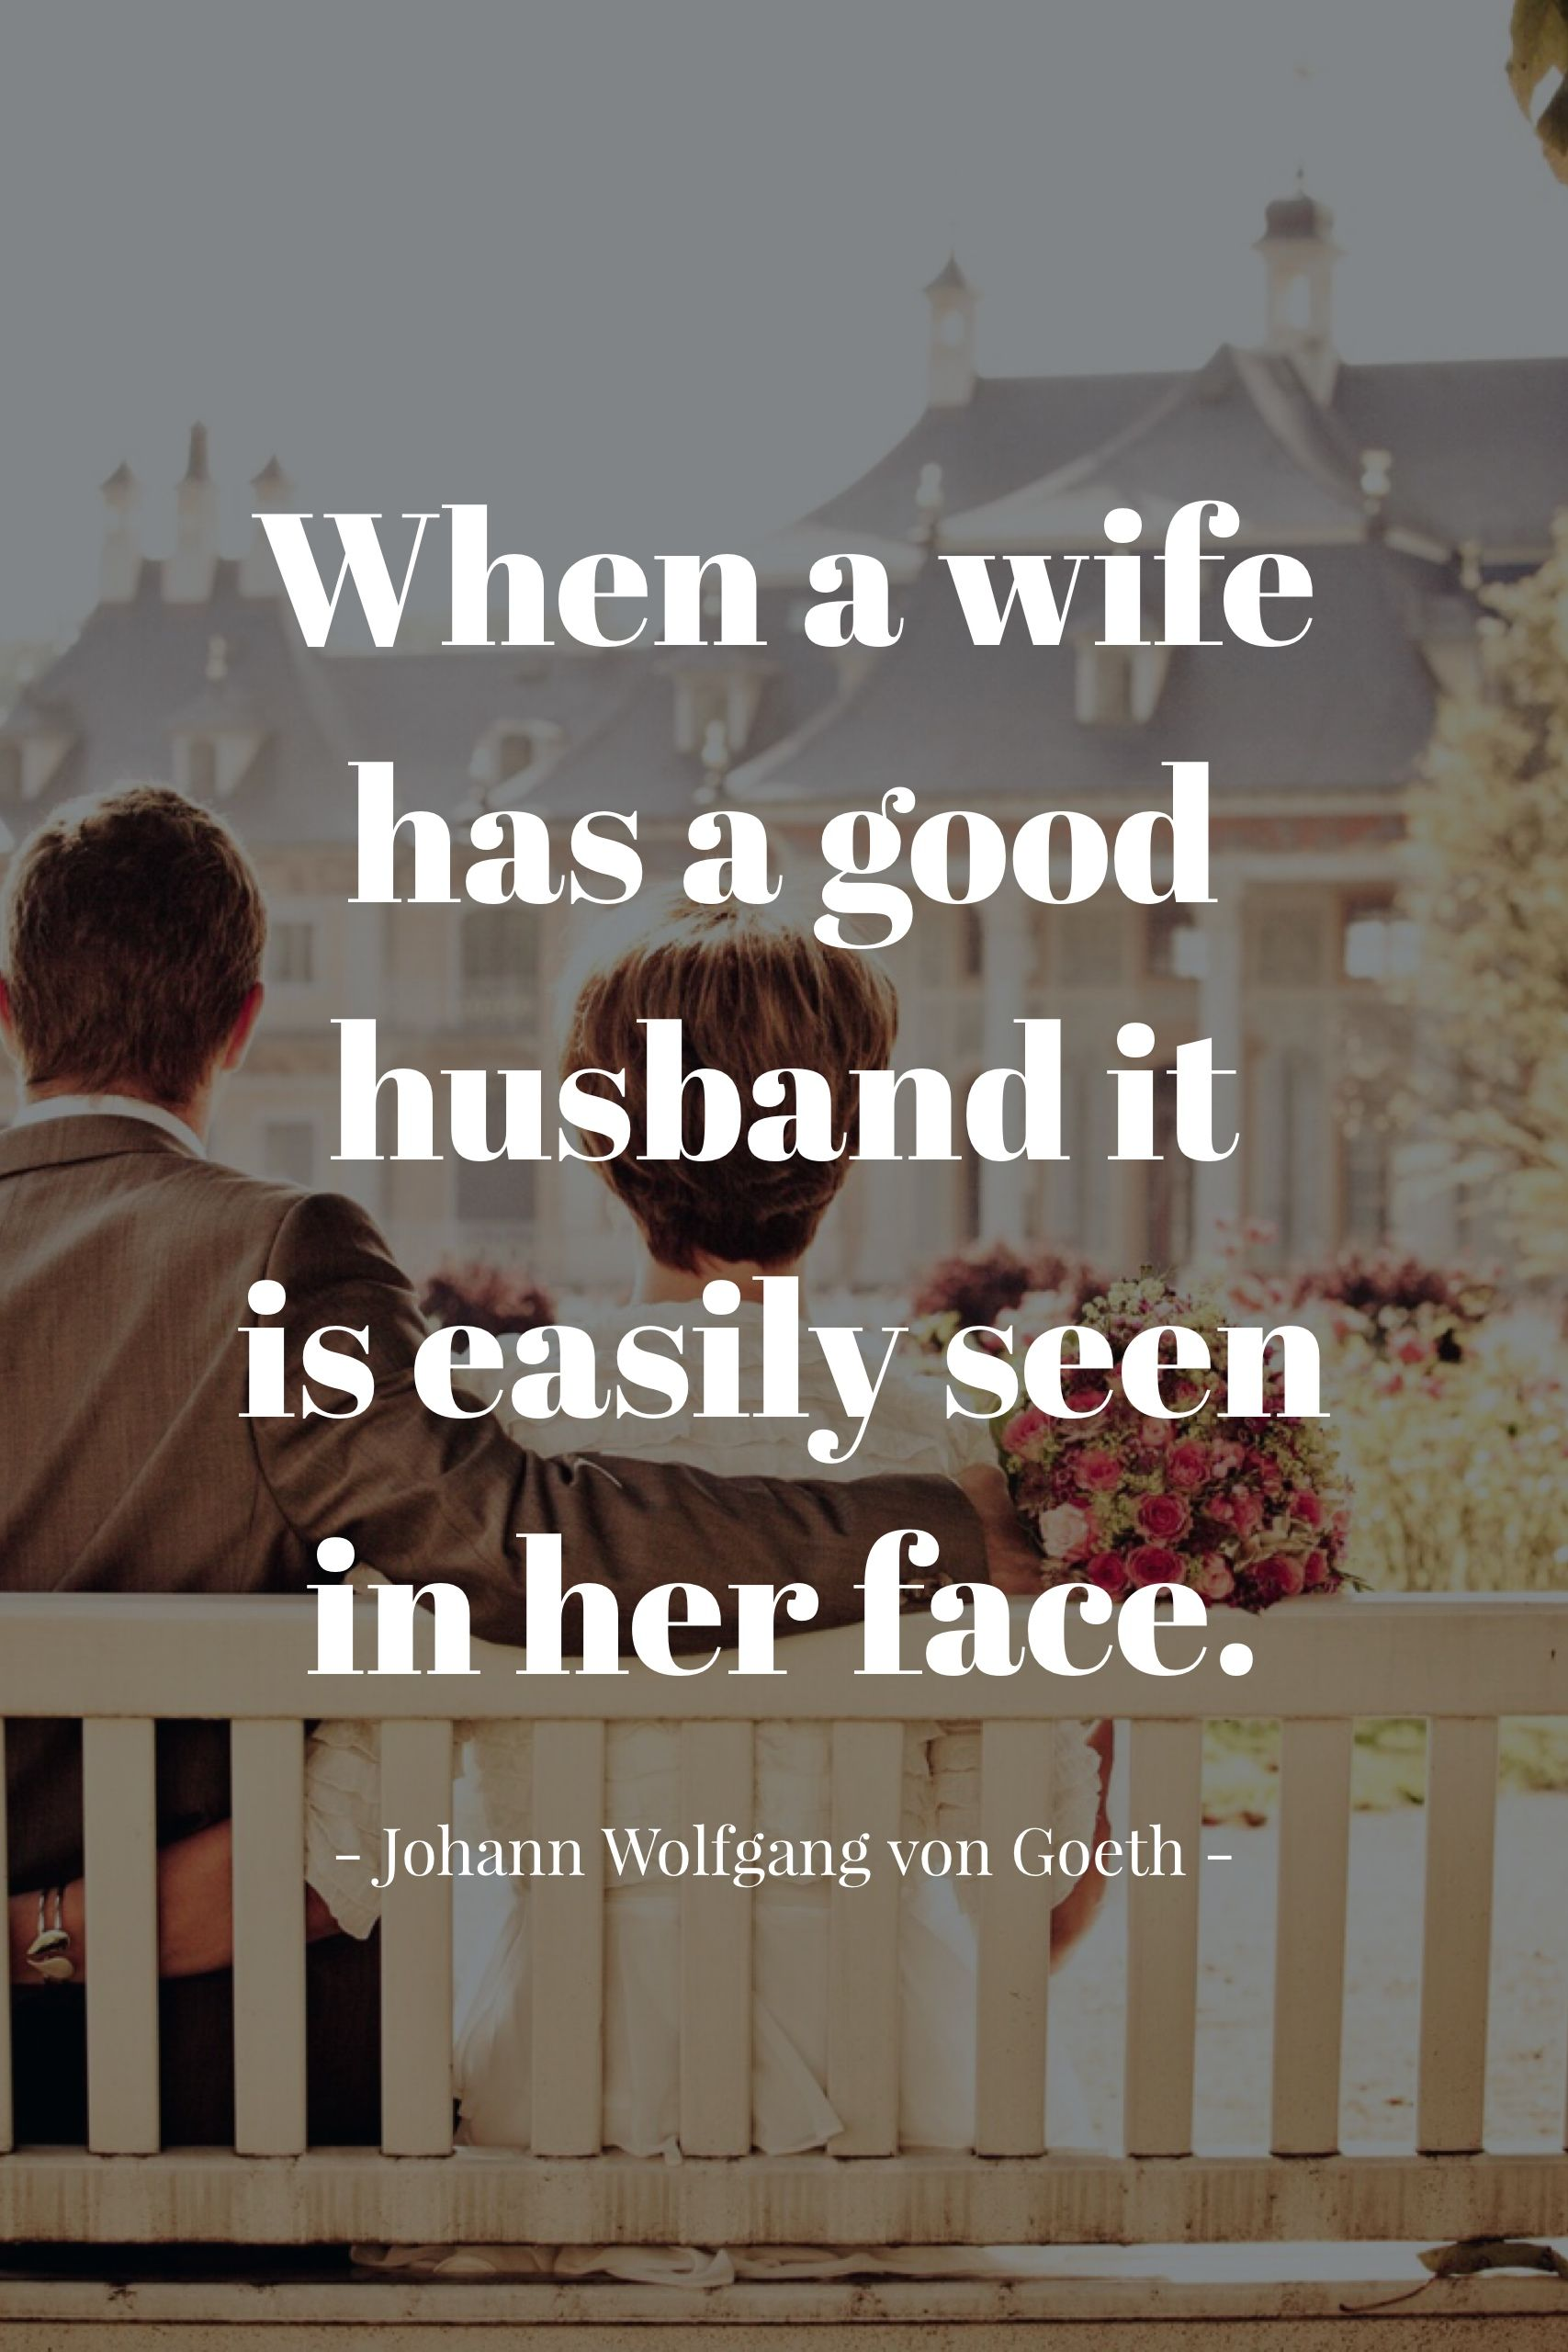 Best quotes about marriage